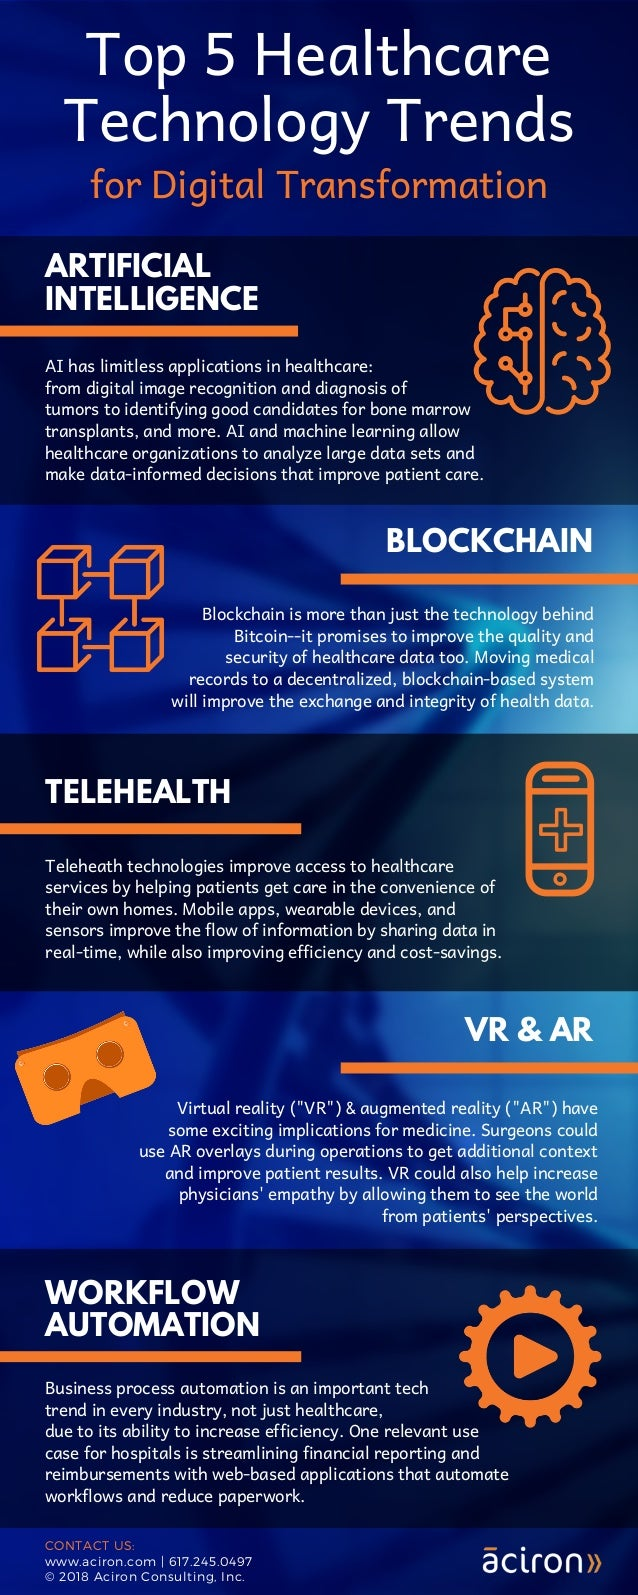 Top 5 Healthcare Technology Trends for Digital Transformation